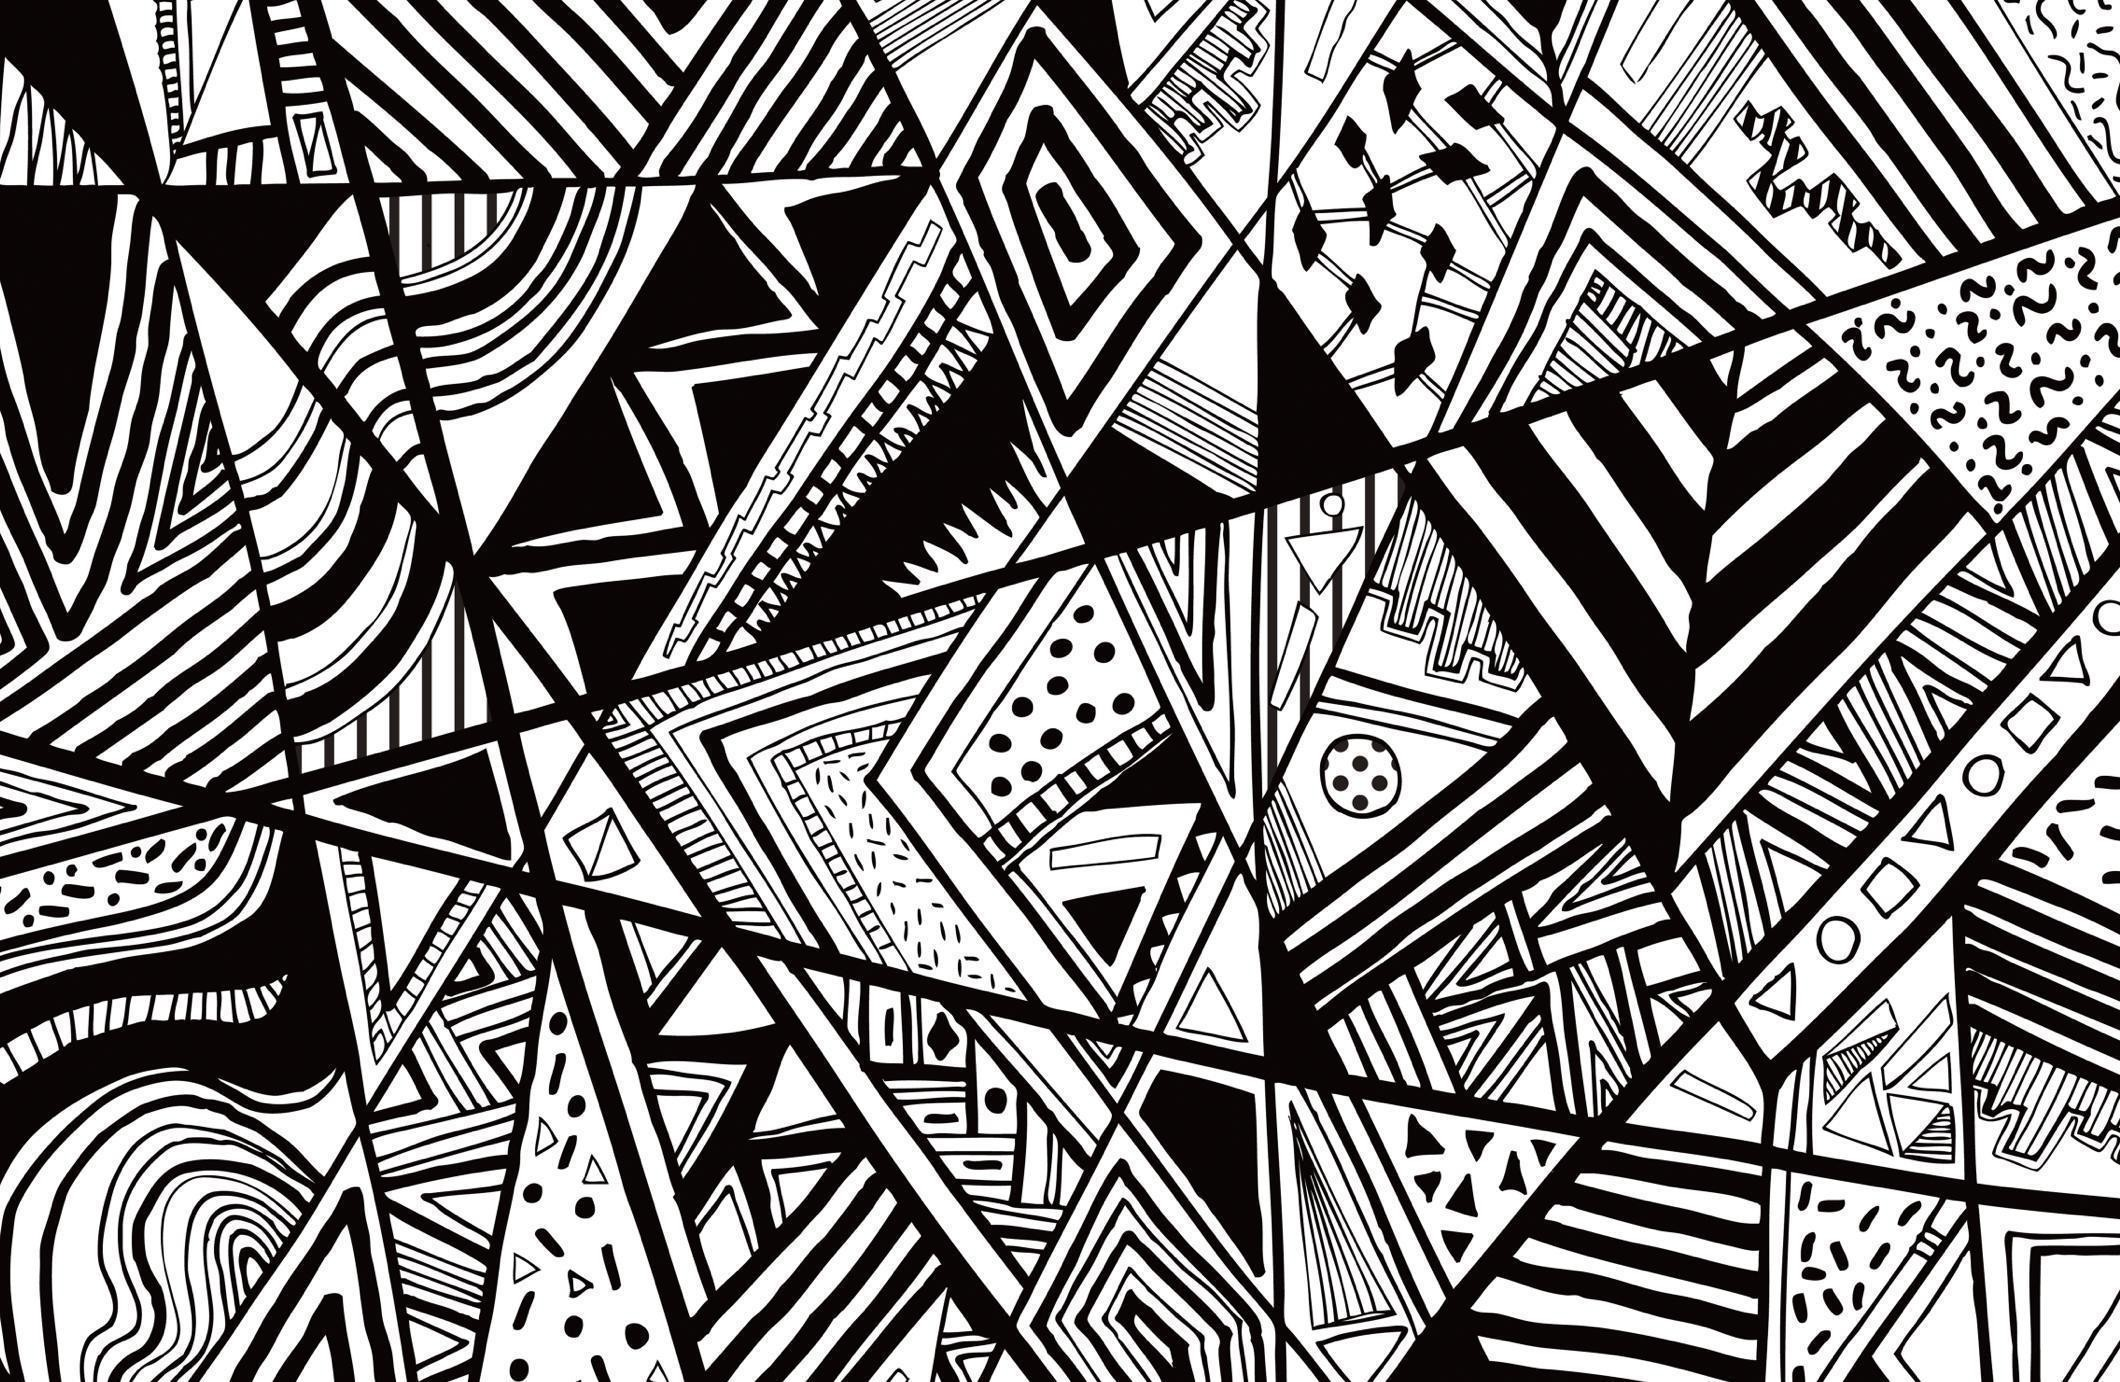 Black and White Swirl Wallpaper 32 images